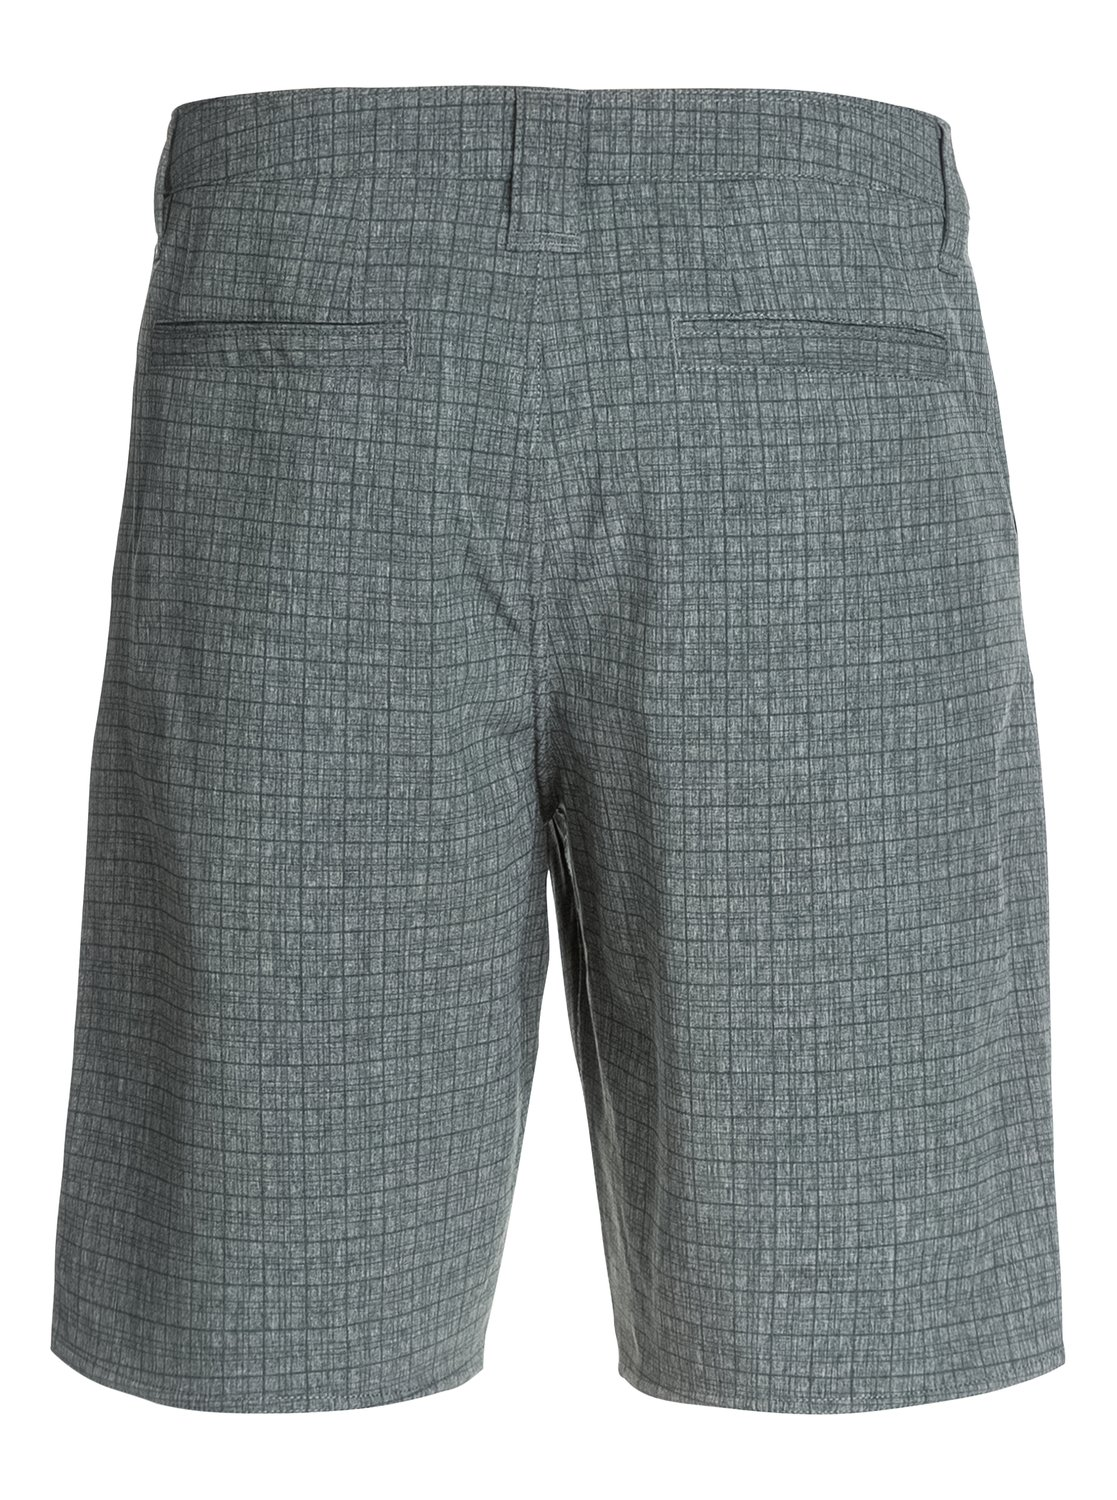 buddhist single men in palisade 4-season single-wall tents palisade pant, men's the palisade pant works as part of a comprehensive system that aligns footwear.